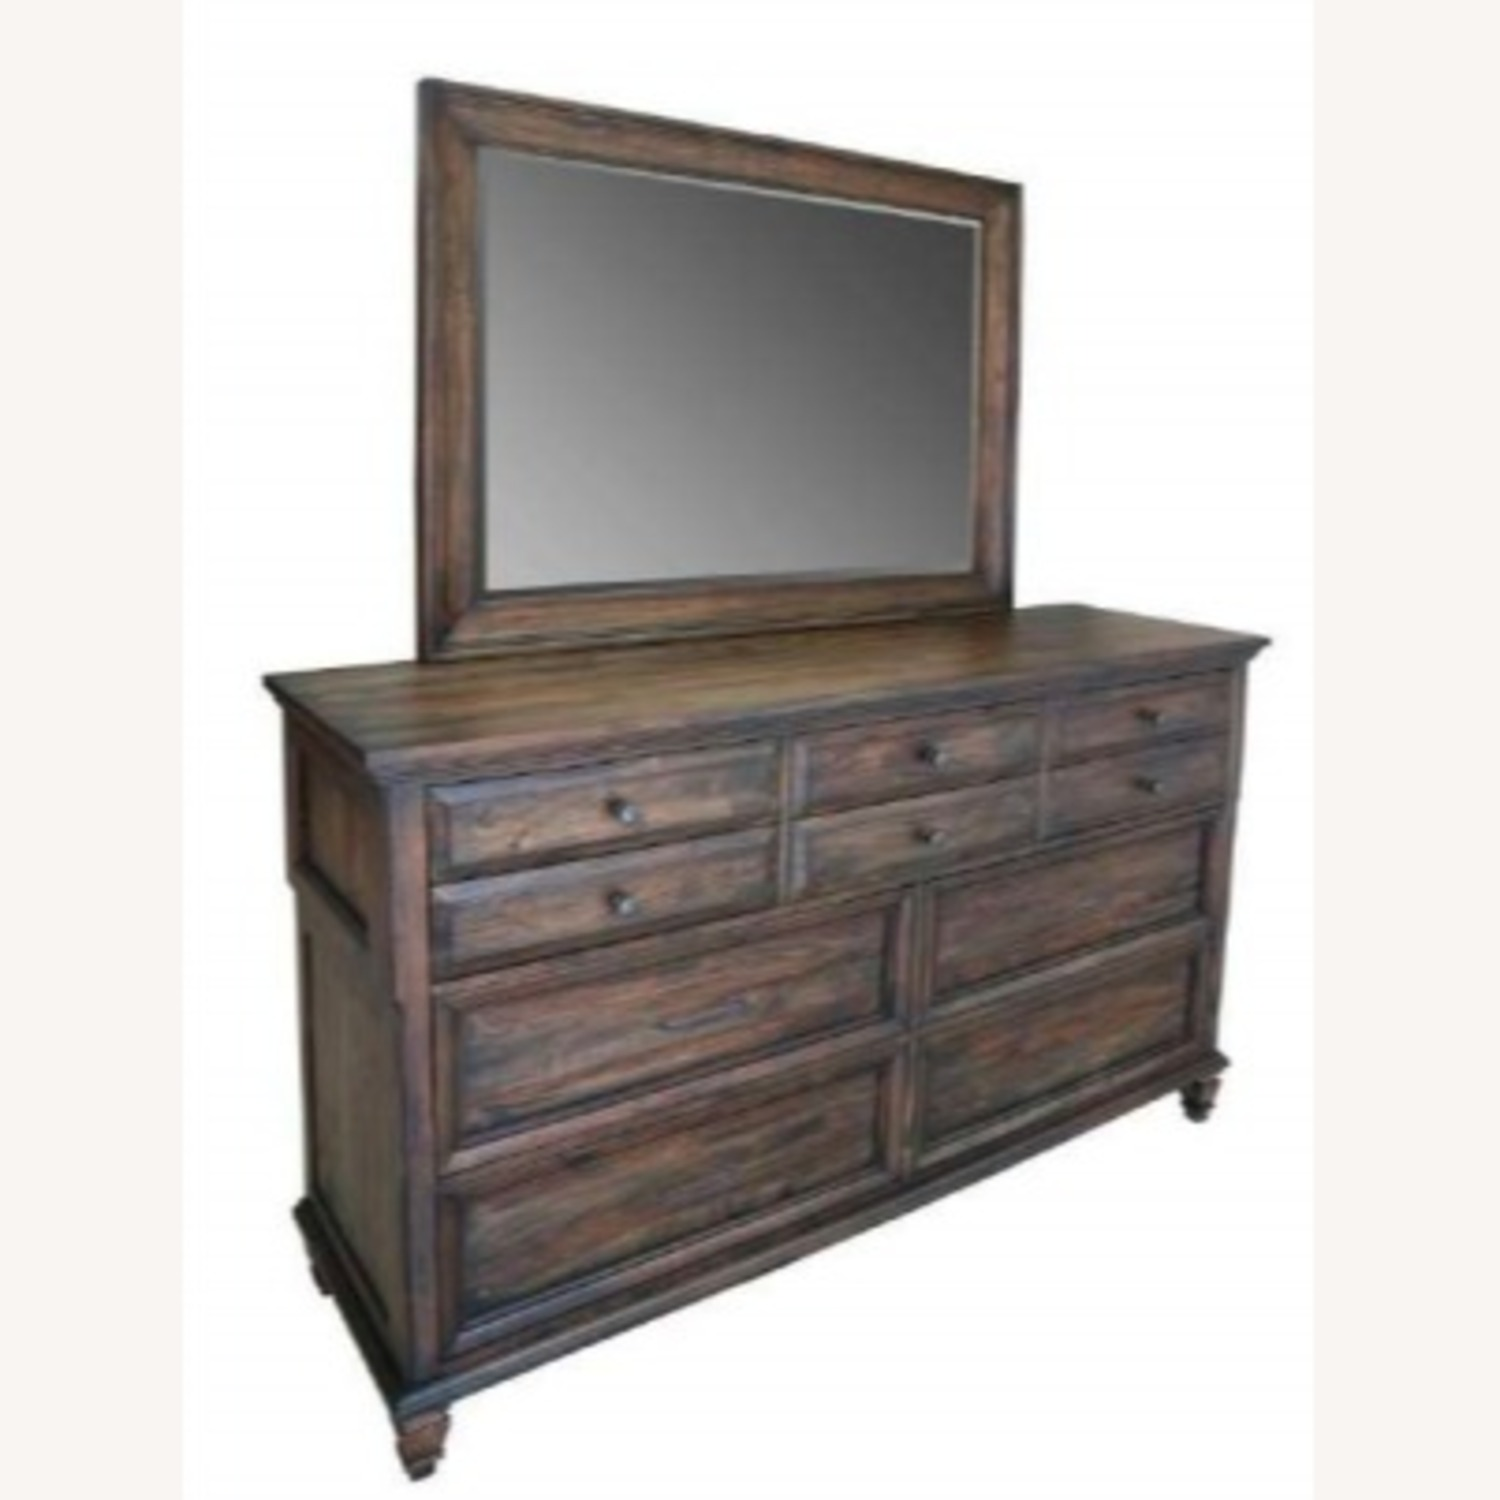 Mirror In Weathered Burnished Brown Finish - image-0